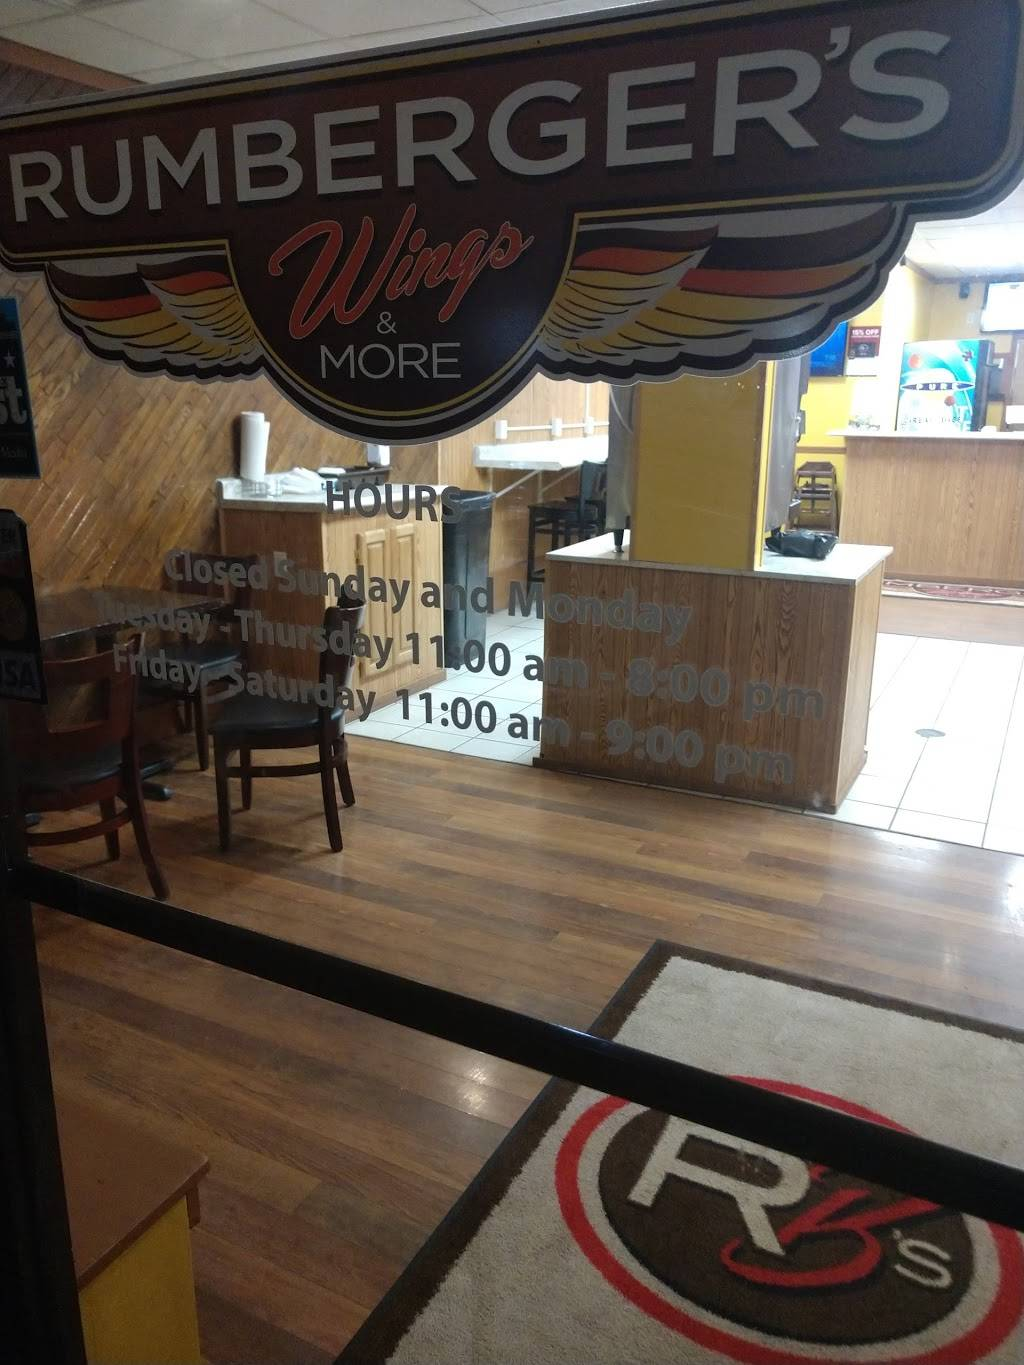 Rumbergers Wings and More   meal delivery   8807 N Knoxville Ave, Peoria, IL 61615, USA   3098391594 OR +1 309-839-1594